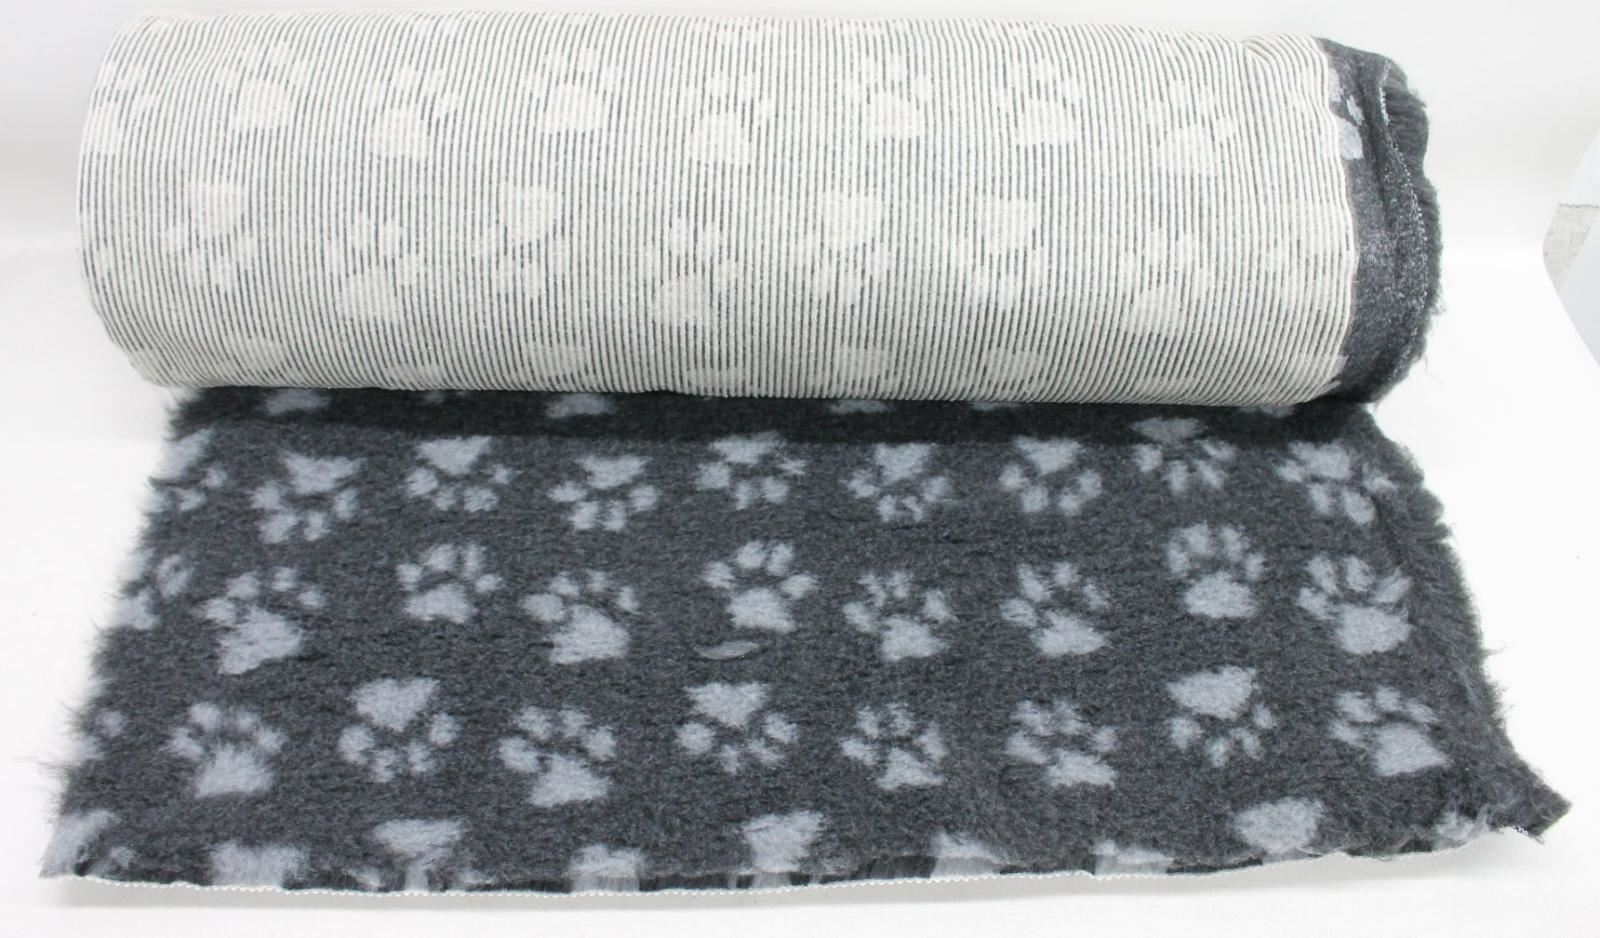 Dog Vet Bed Fleece Charcoal Grey Paw Print Non-Slip 300x75x3cm Fabric Roll NEW